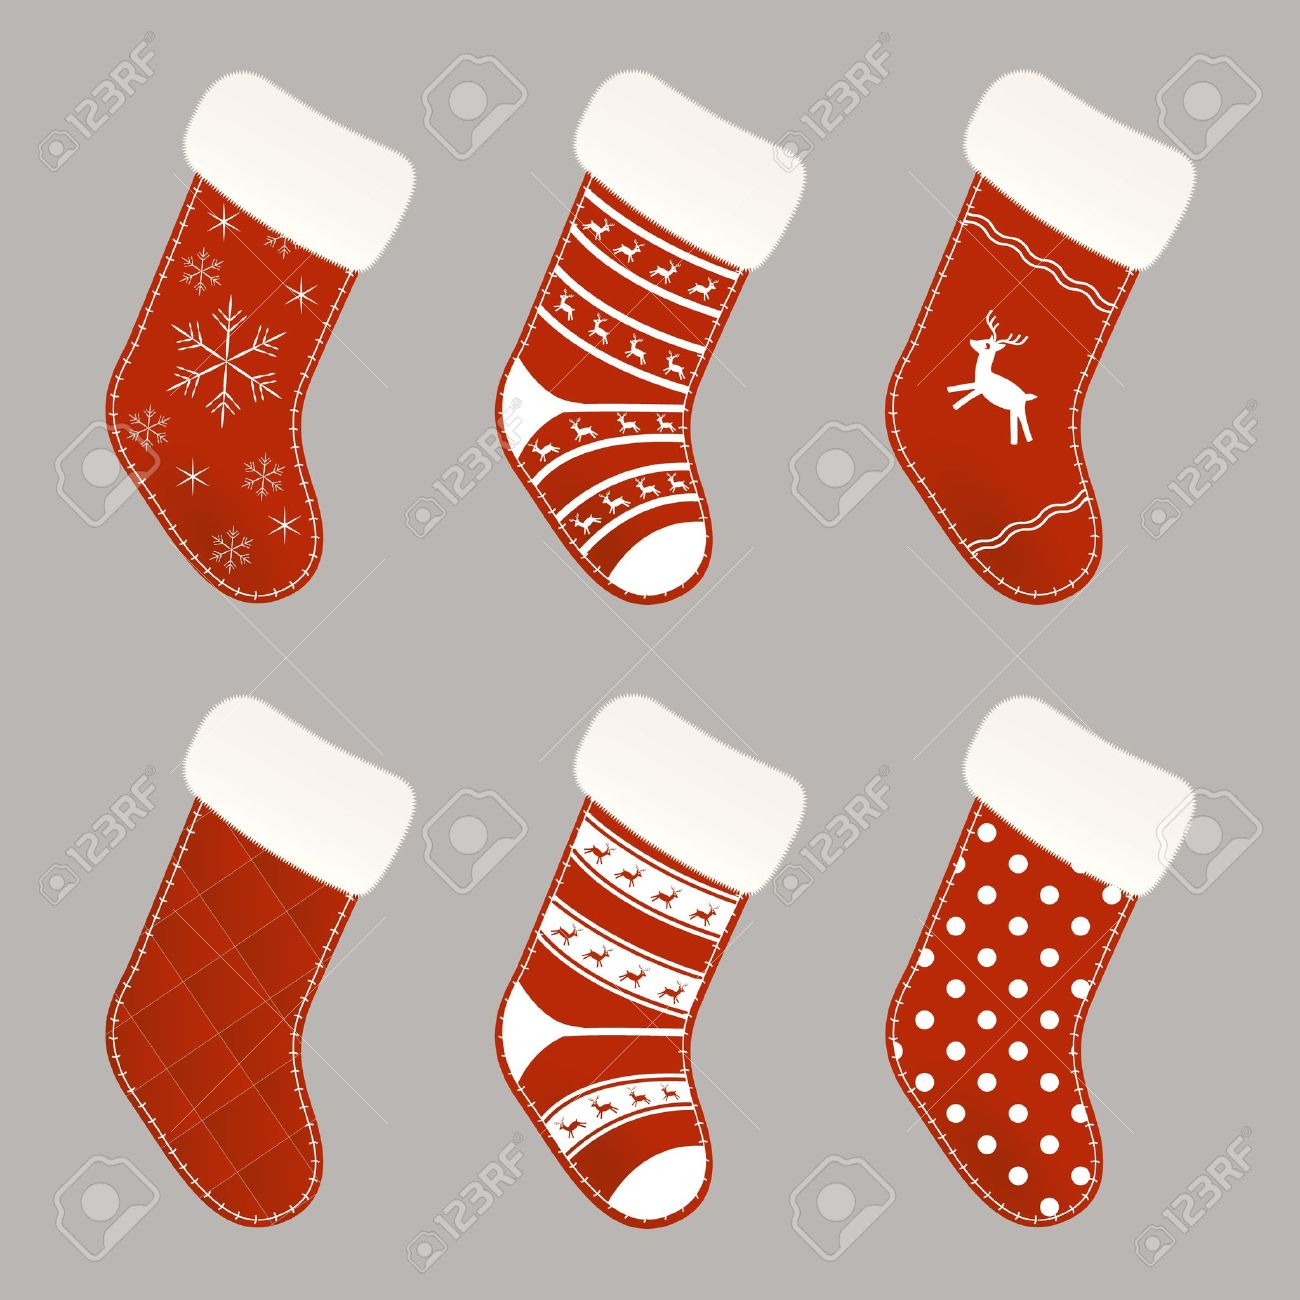 set of red and white christmas socks royalty free cliparts